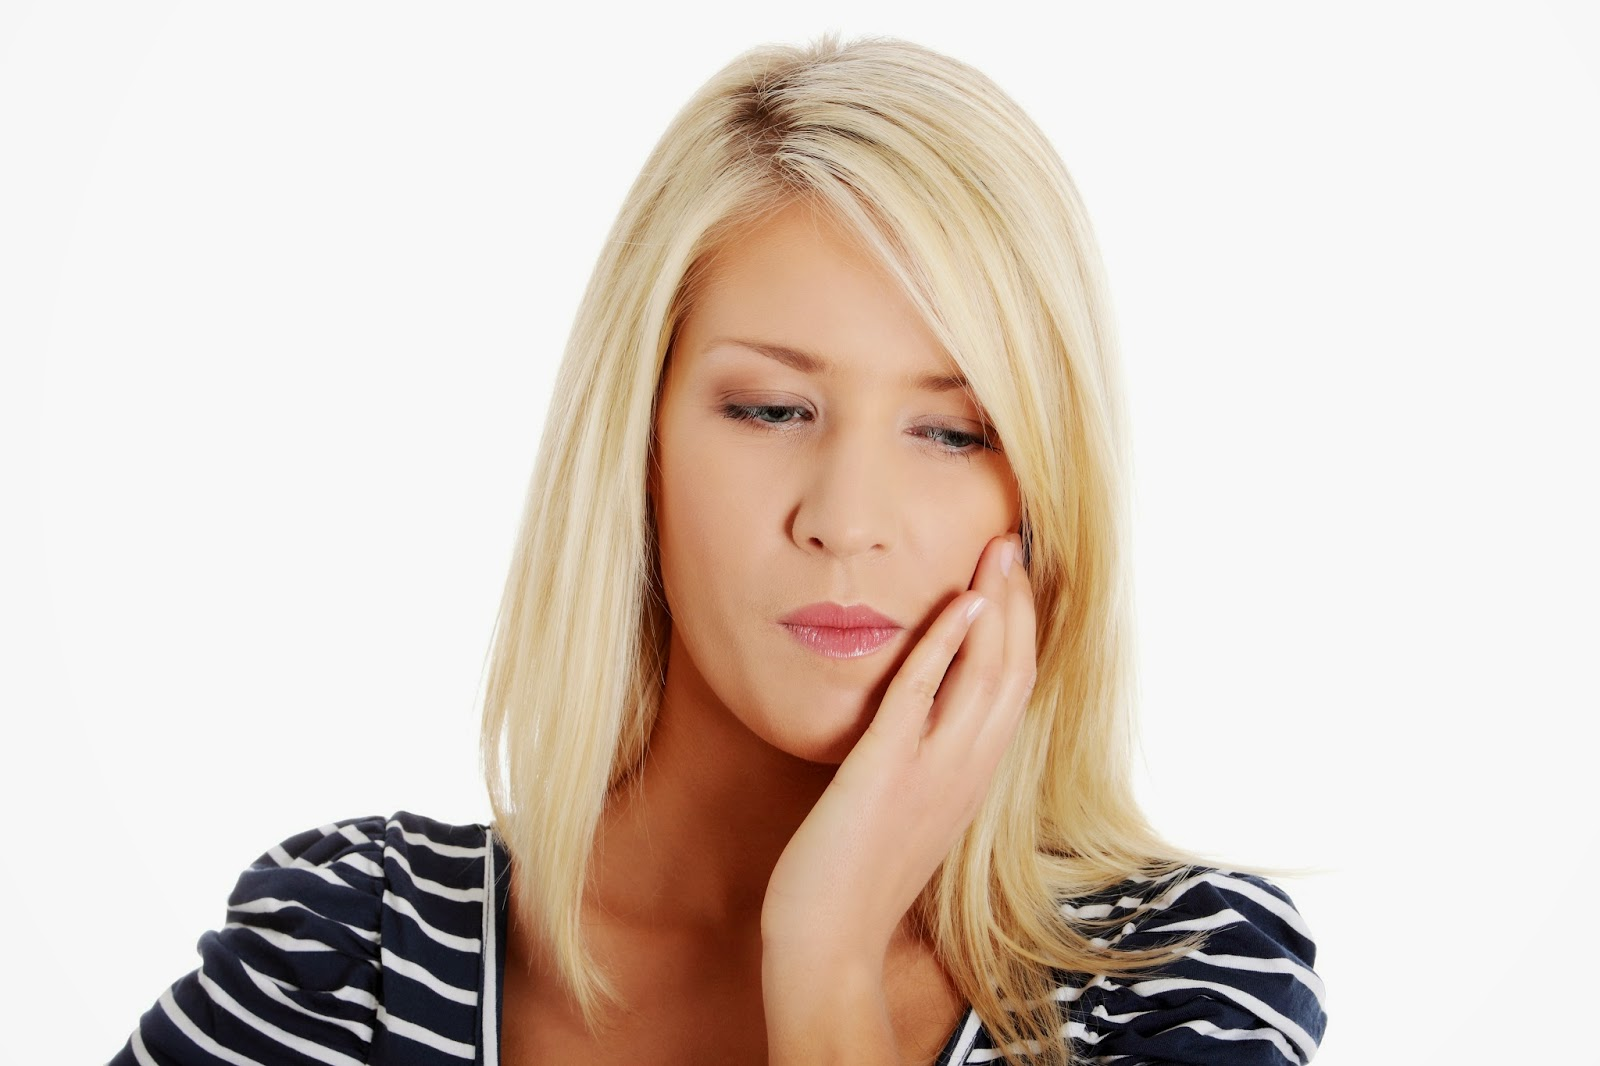 742beb7e9b About 10 million wisdom teeth are removed each year from 5 million people.  Oral surgery to remove wisdom teeth is a standard procedure that is  practiced ...